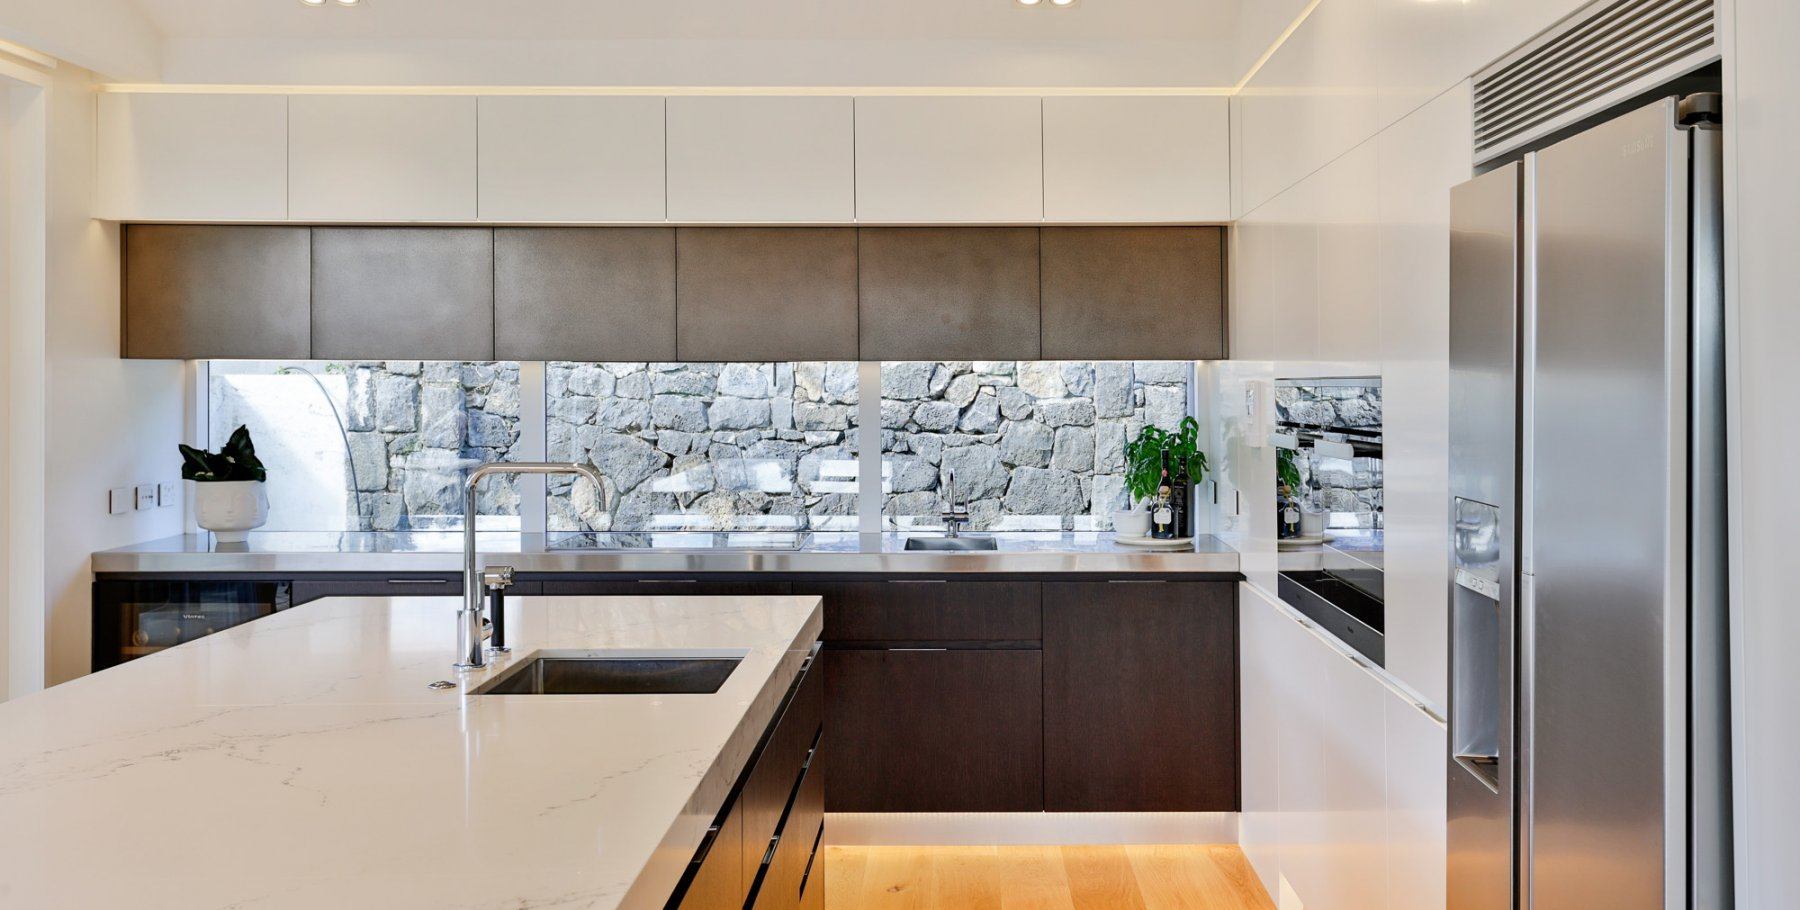 Remuera Kitchen by Shane George by Kitchens by Design